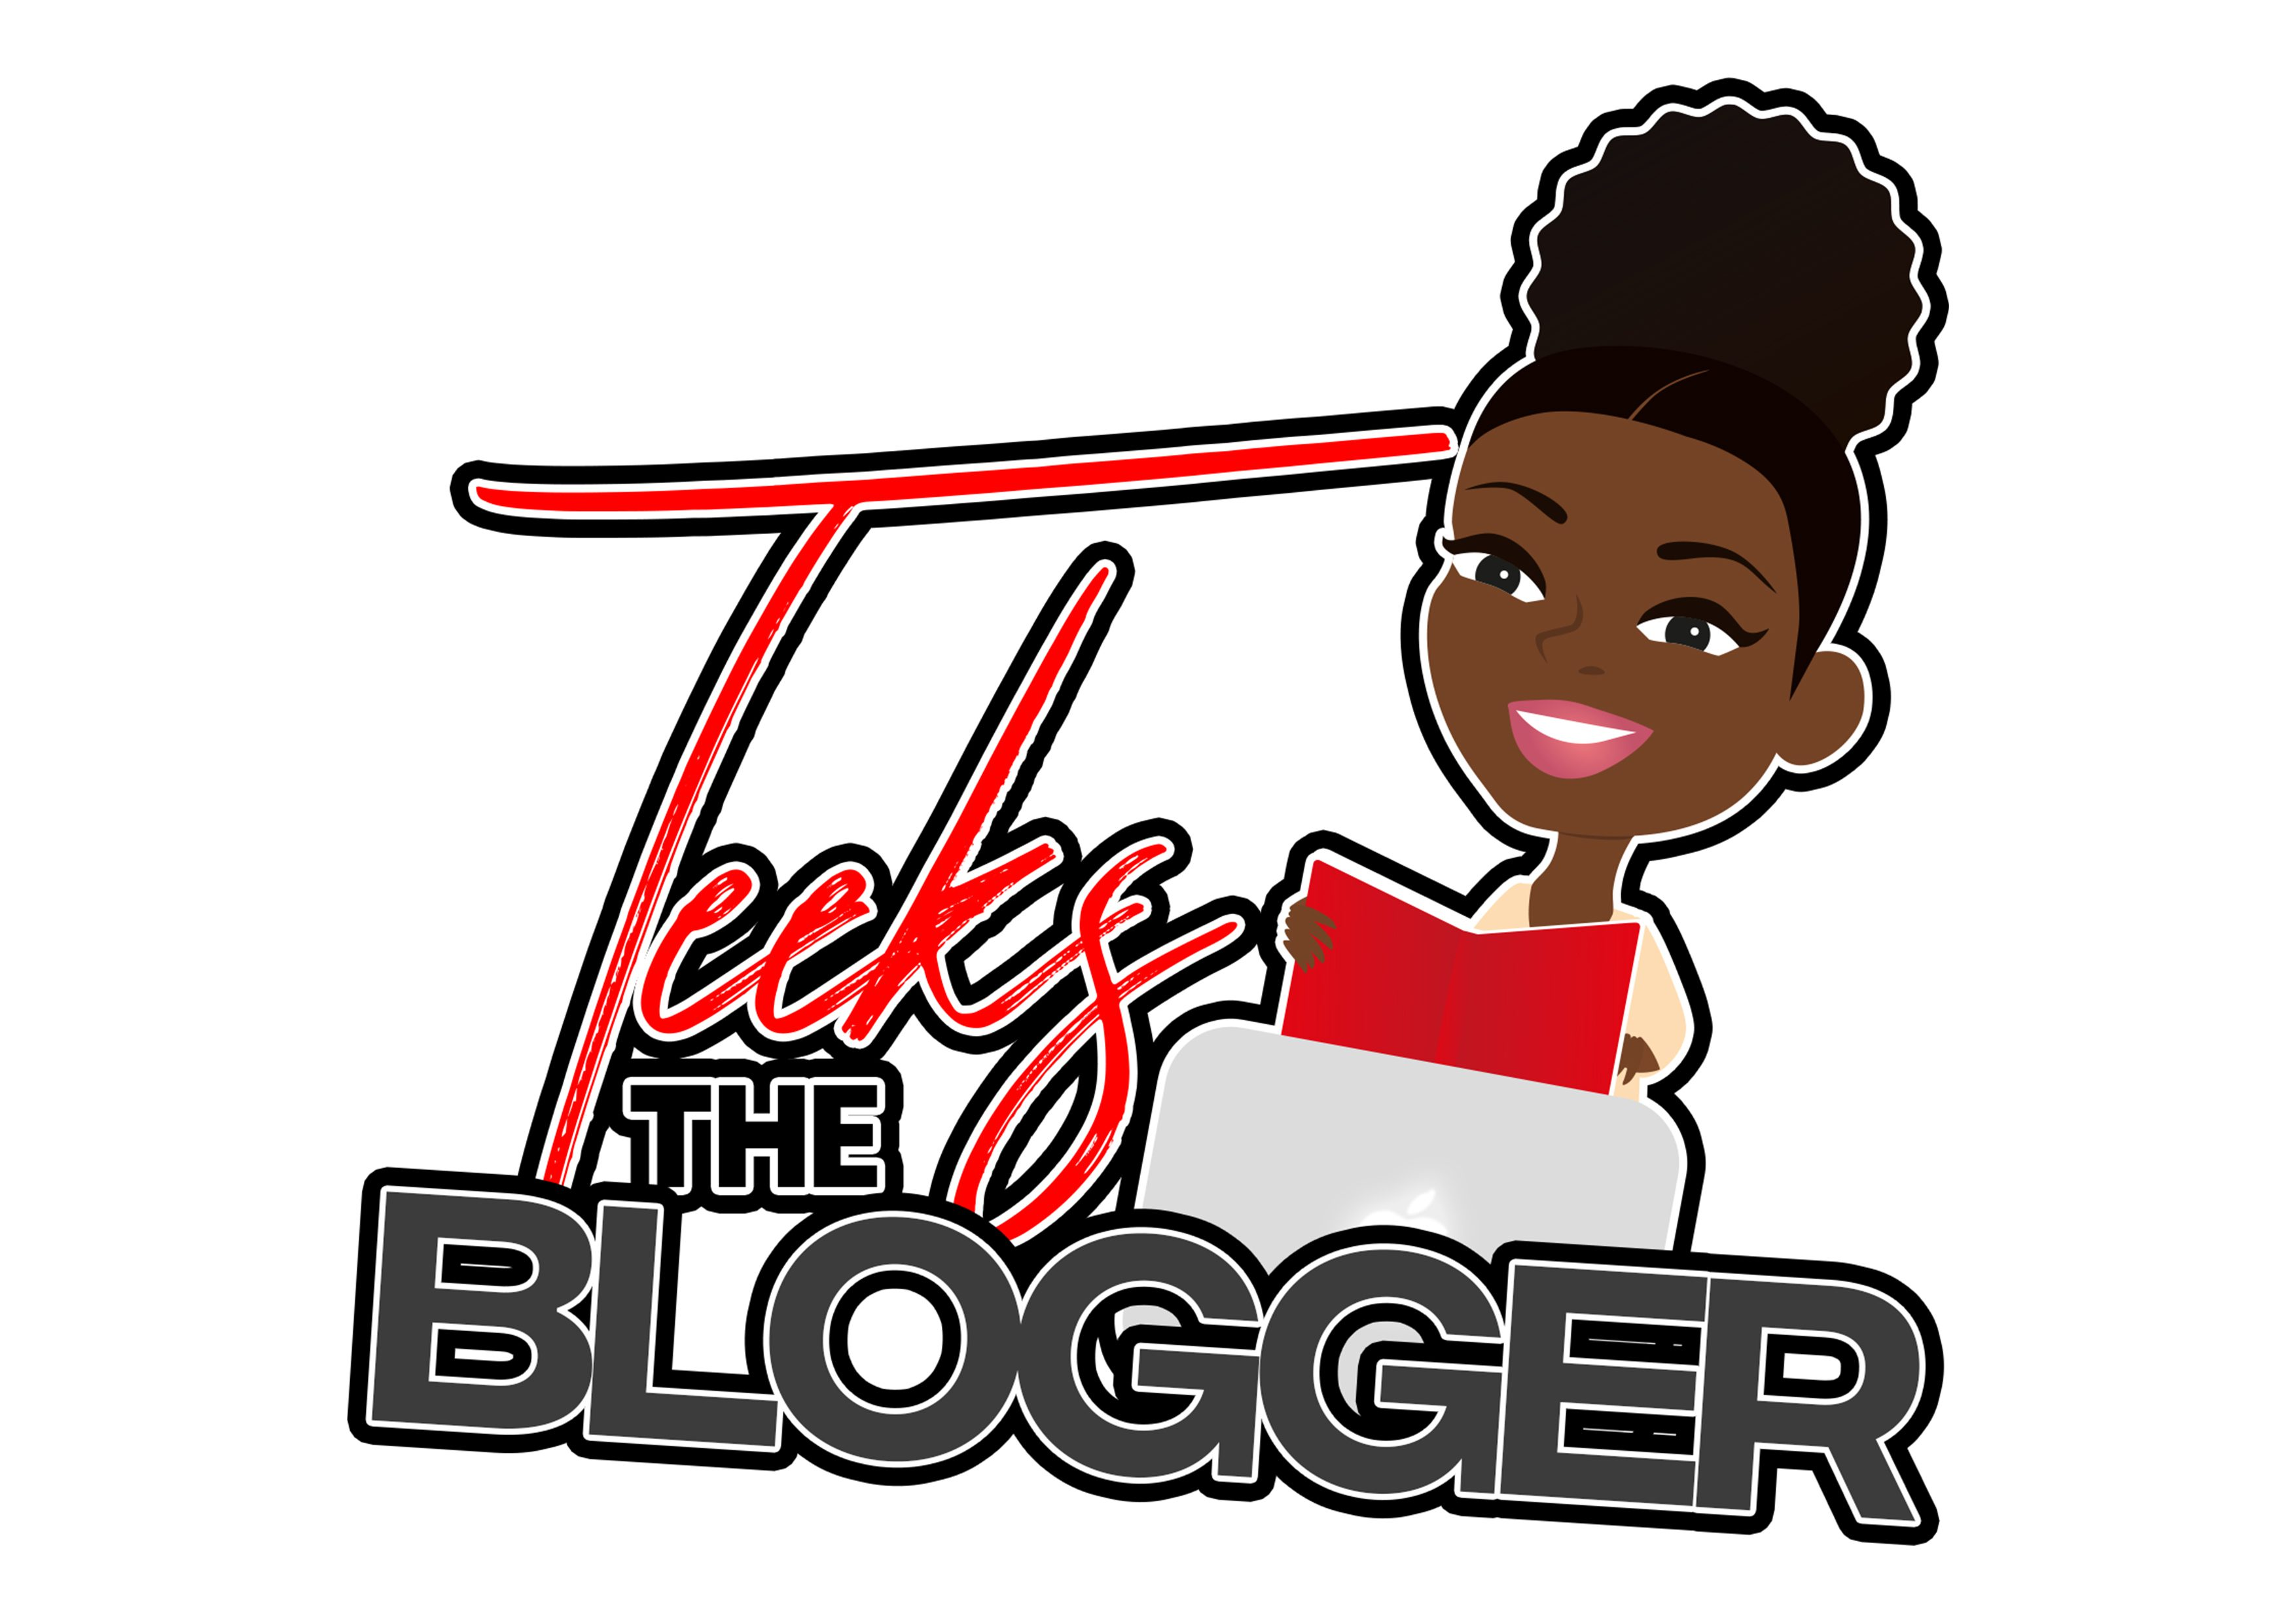 TEEKS THE BLOGGER